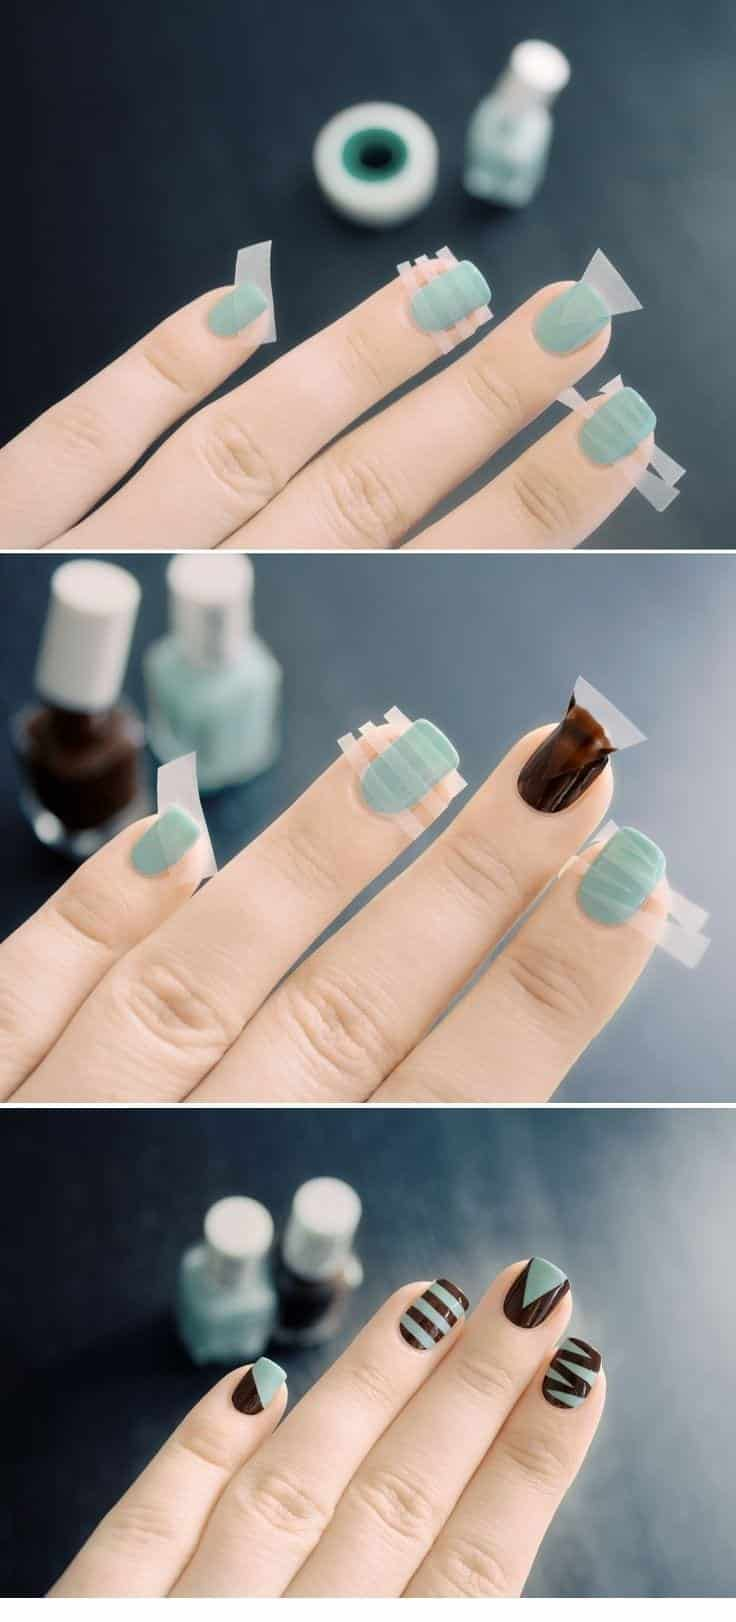 Cool-and-Fun-Nail-Art-Design Short Nail Designs - 25 Cute Nail Art Ideas for Short Nails